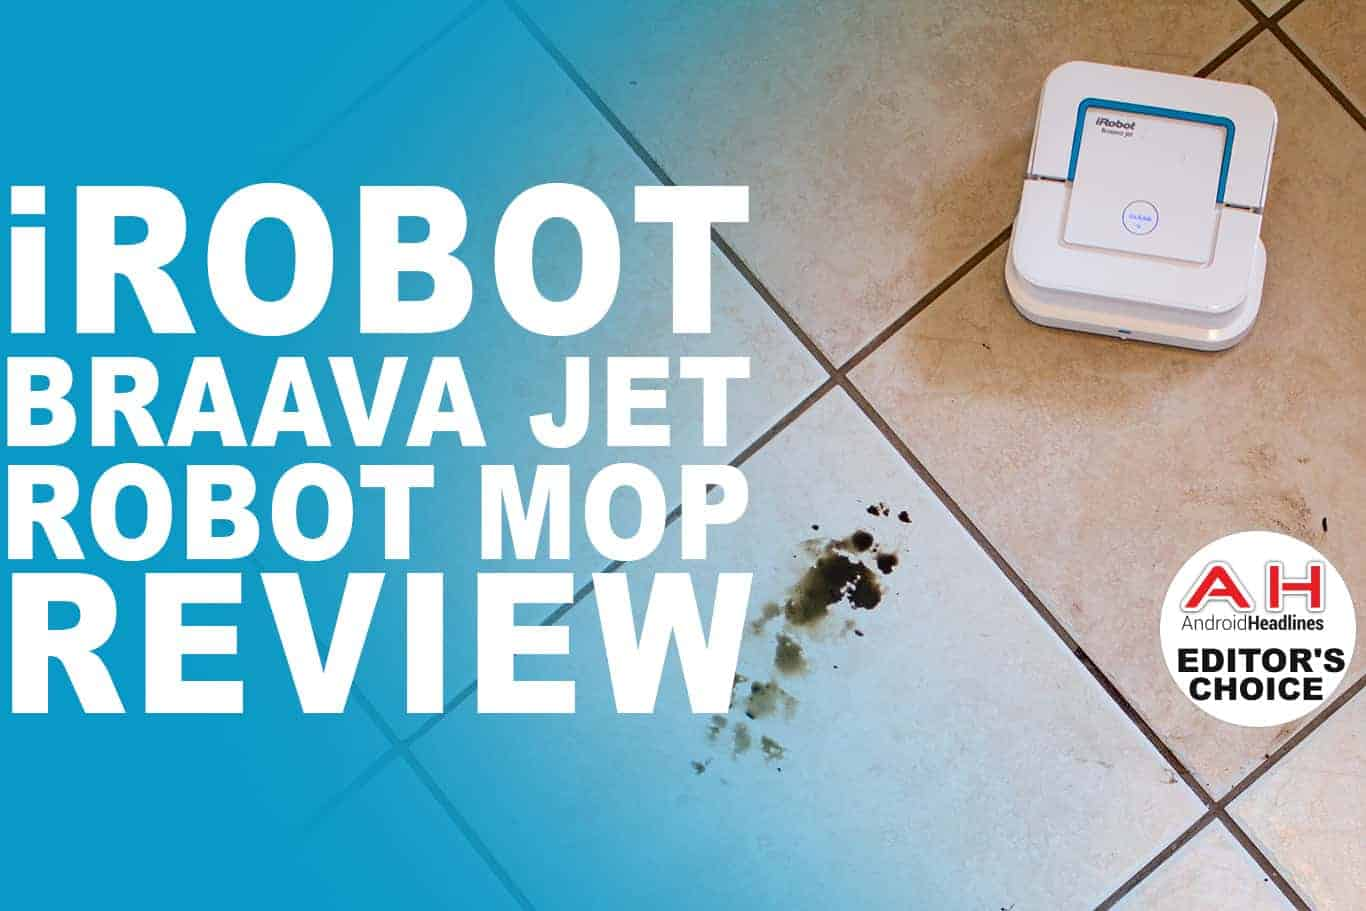 irobot braava jet 240 robot mop video review. Black Bedroom Furniture Sets. Home Design Ideas